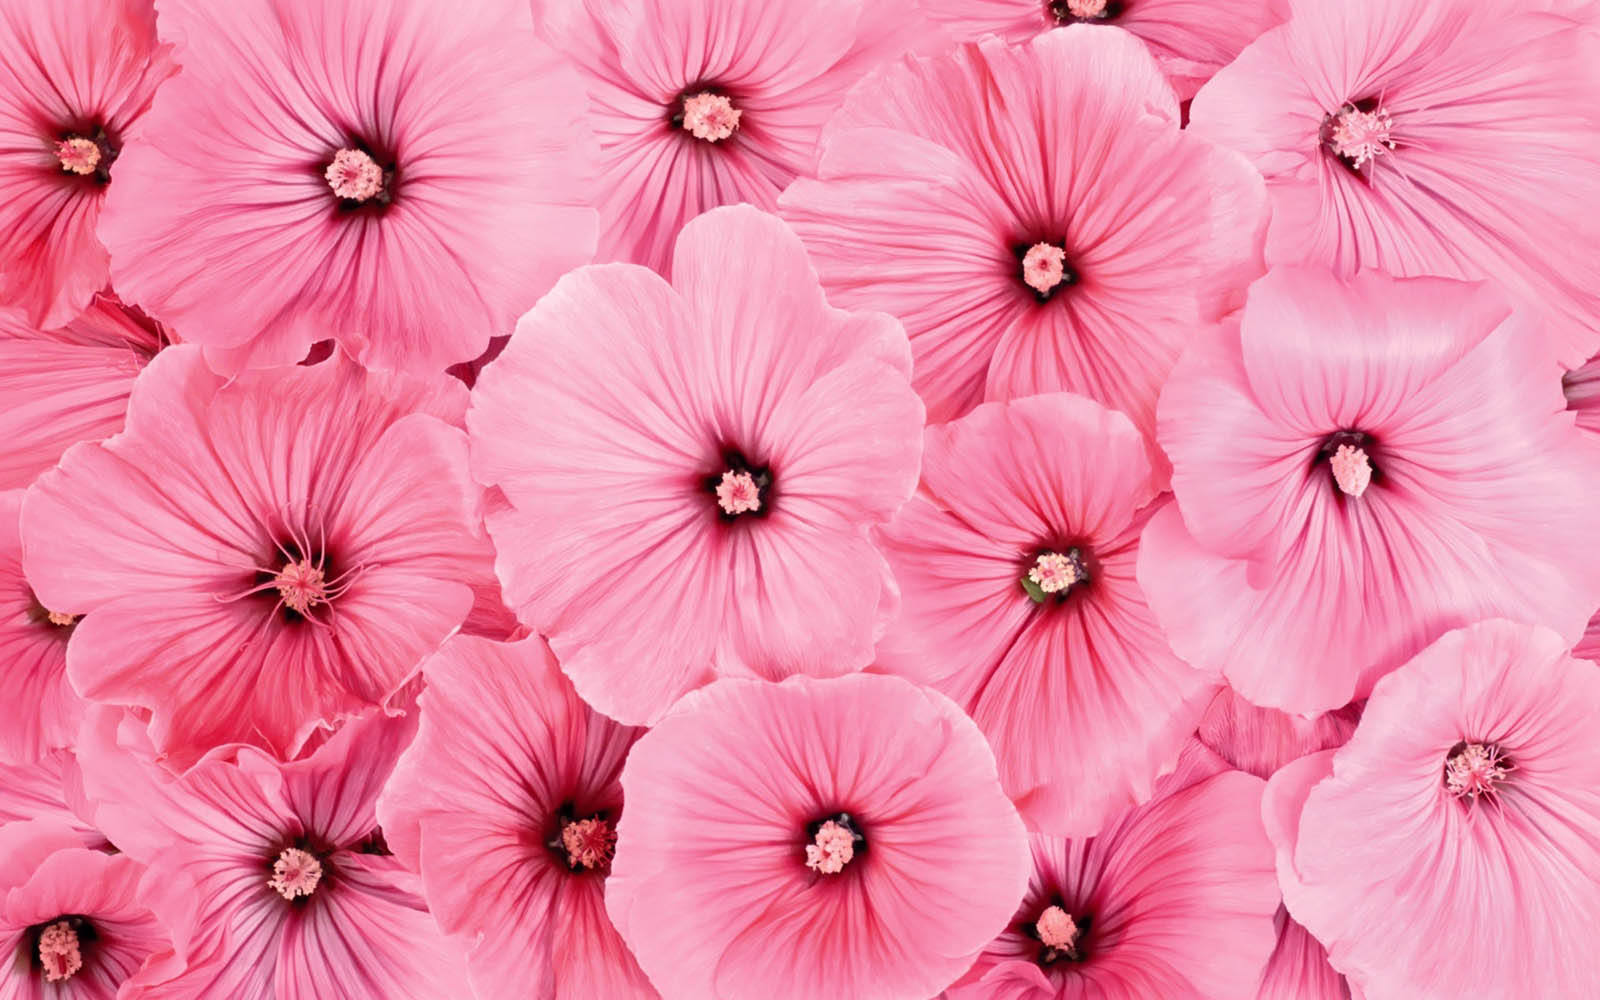 Wallpapers Pink Flowers Desktop Backgrounds Pink Flowers PhotosPink 1600x1000